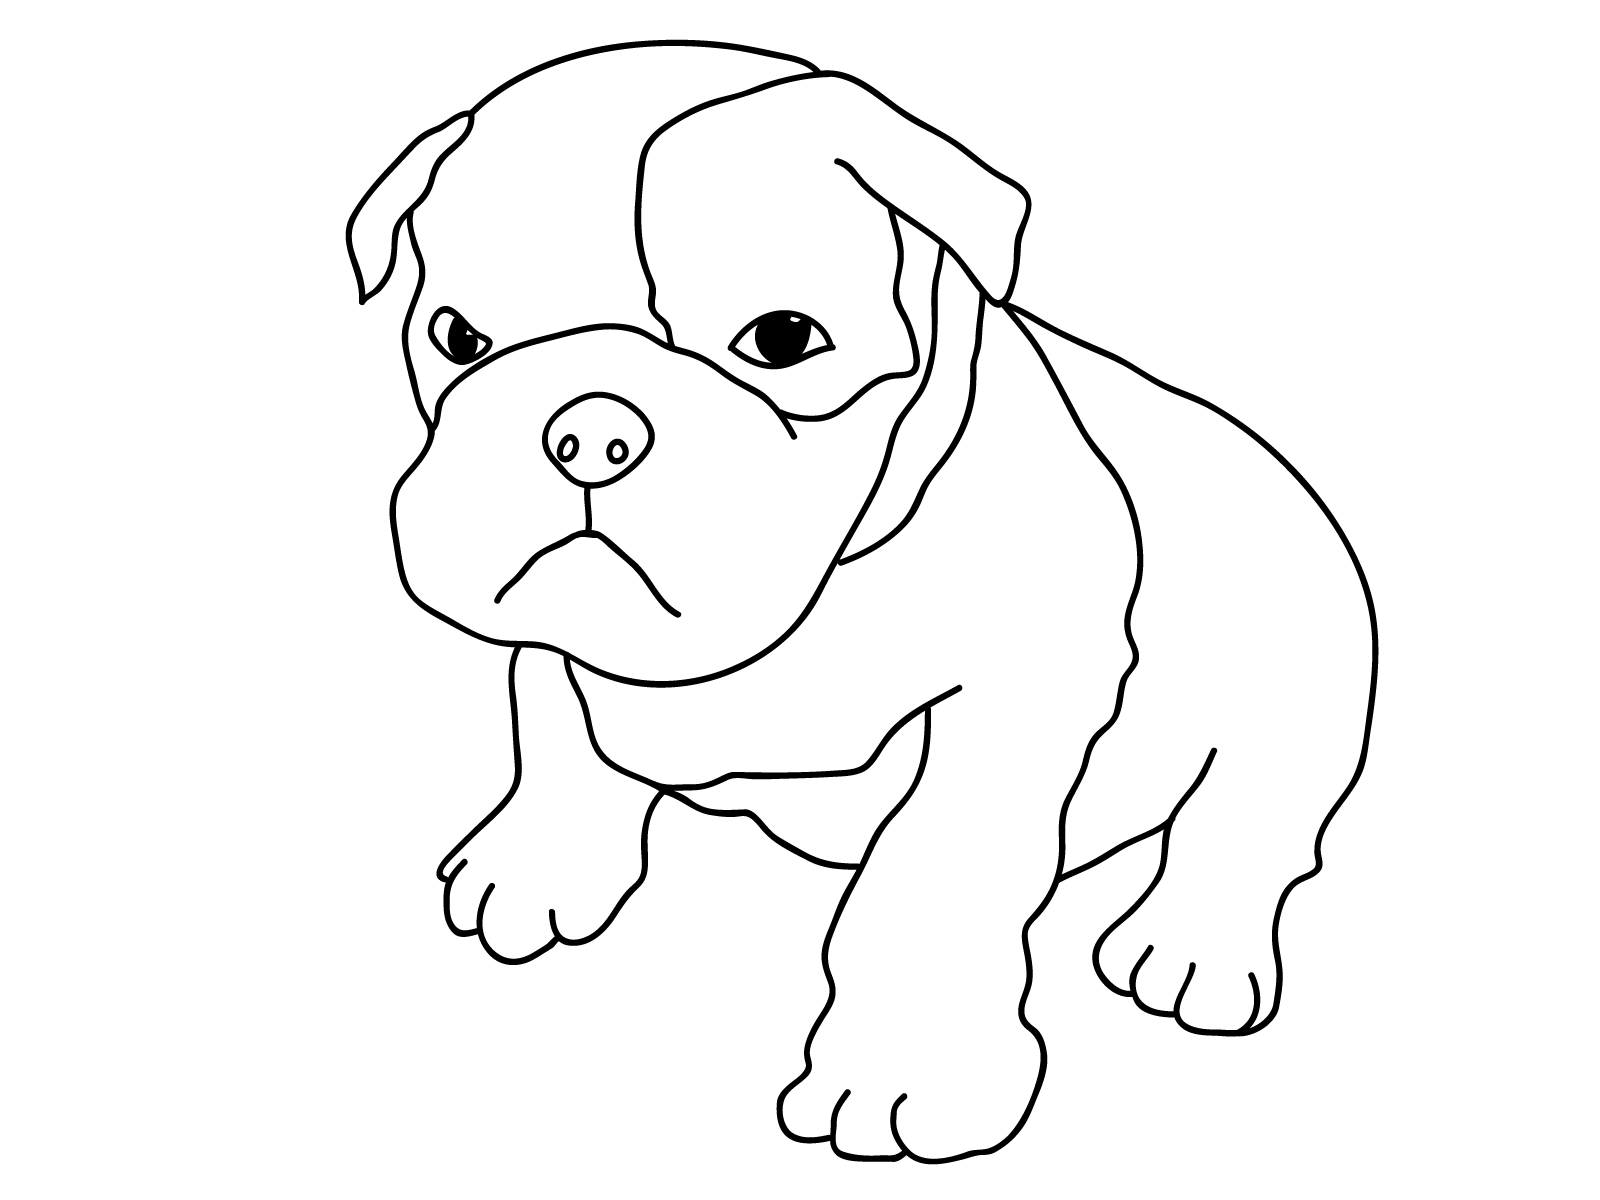 a coloring page of a dog great puppy coloring page free coloring pages online of dog a a coloring page